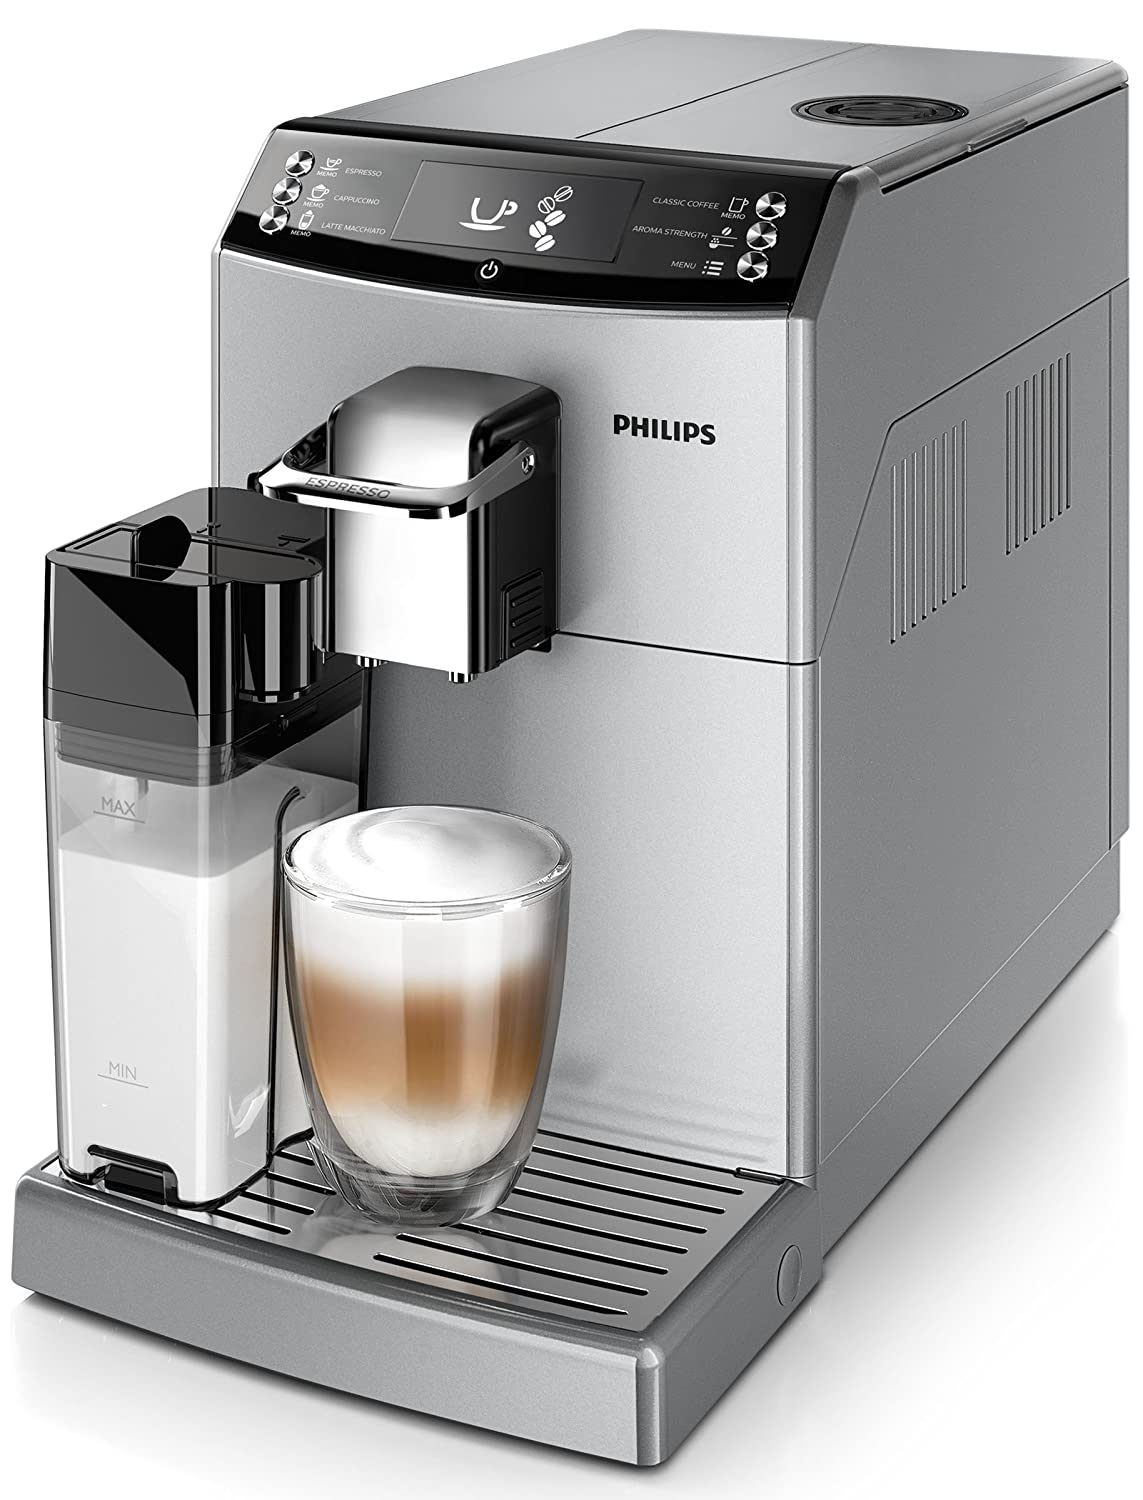 Philips 4000 series EP4050/10 - Cafetera (1,8 L, 7,2 g): Amazon.es ...